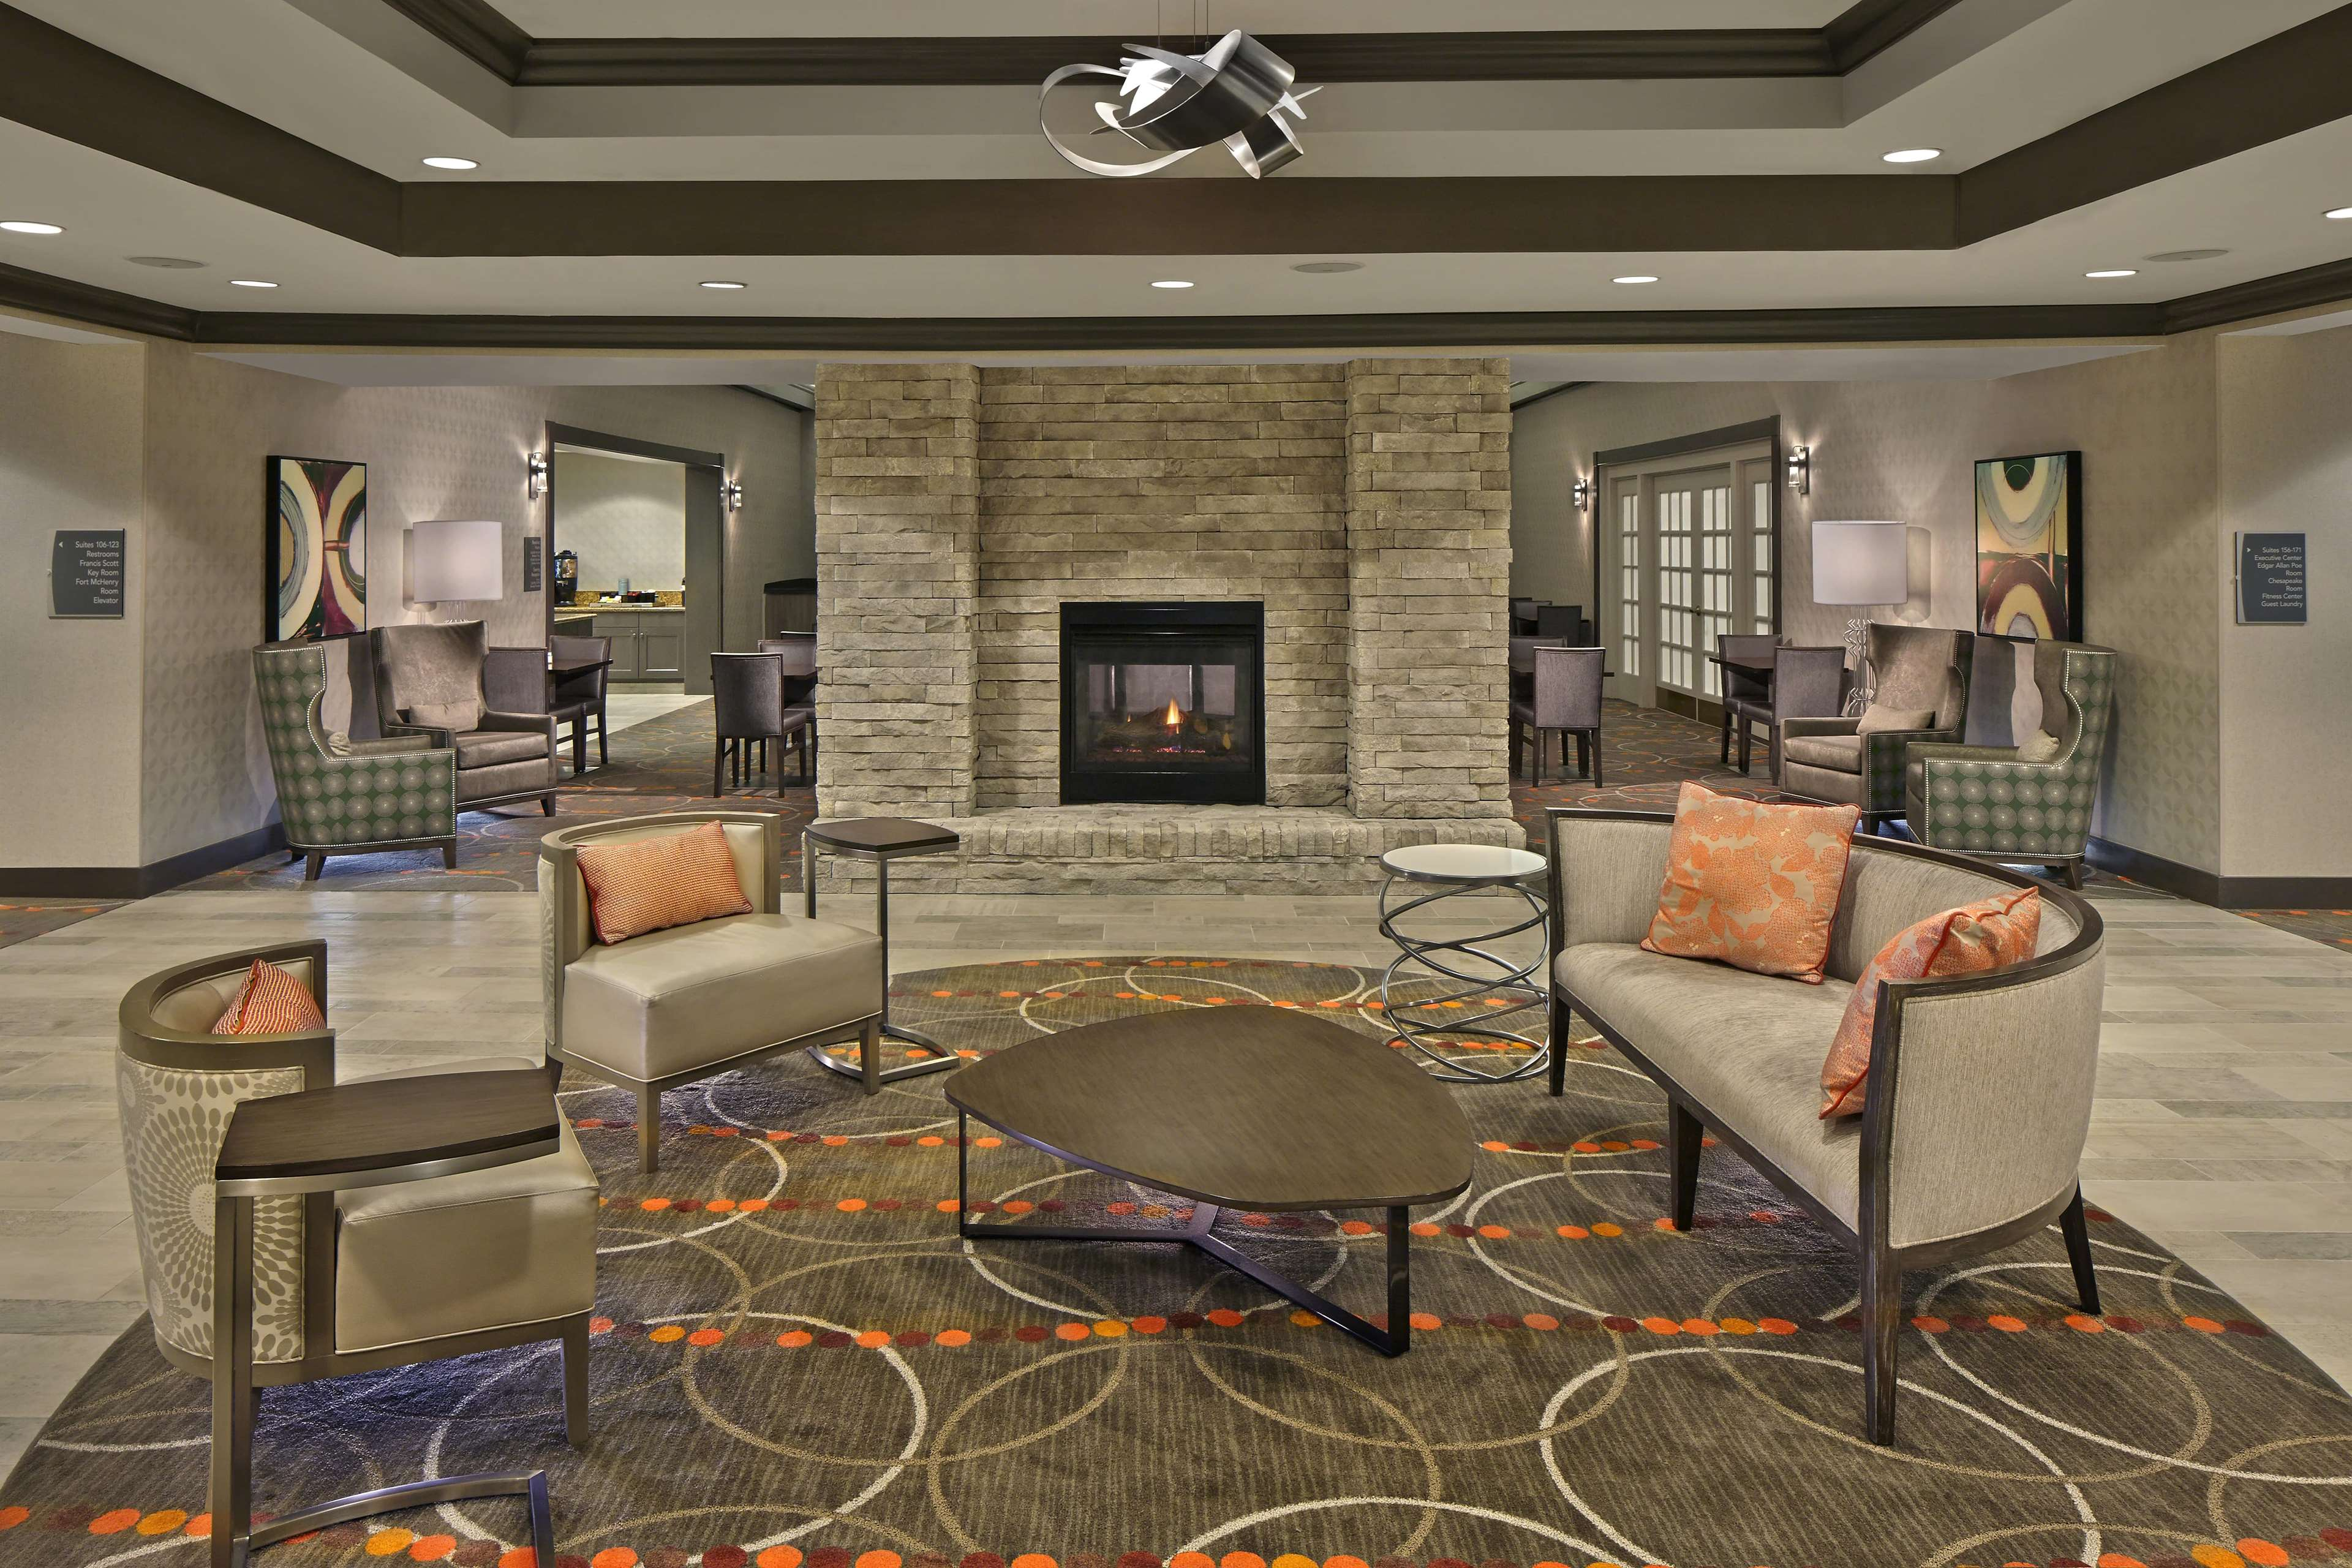 Homewood Suites by Hilton Columbia image 4